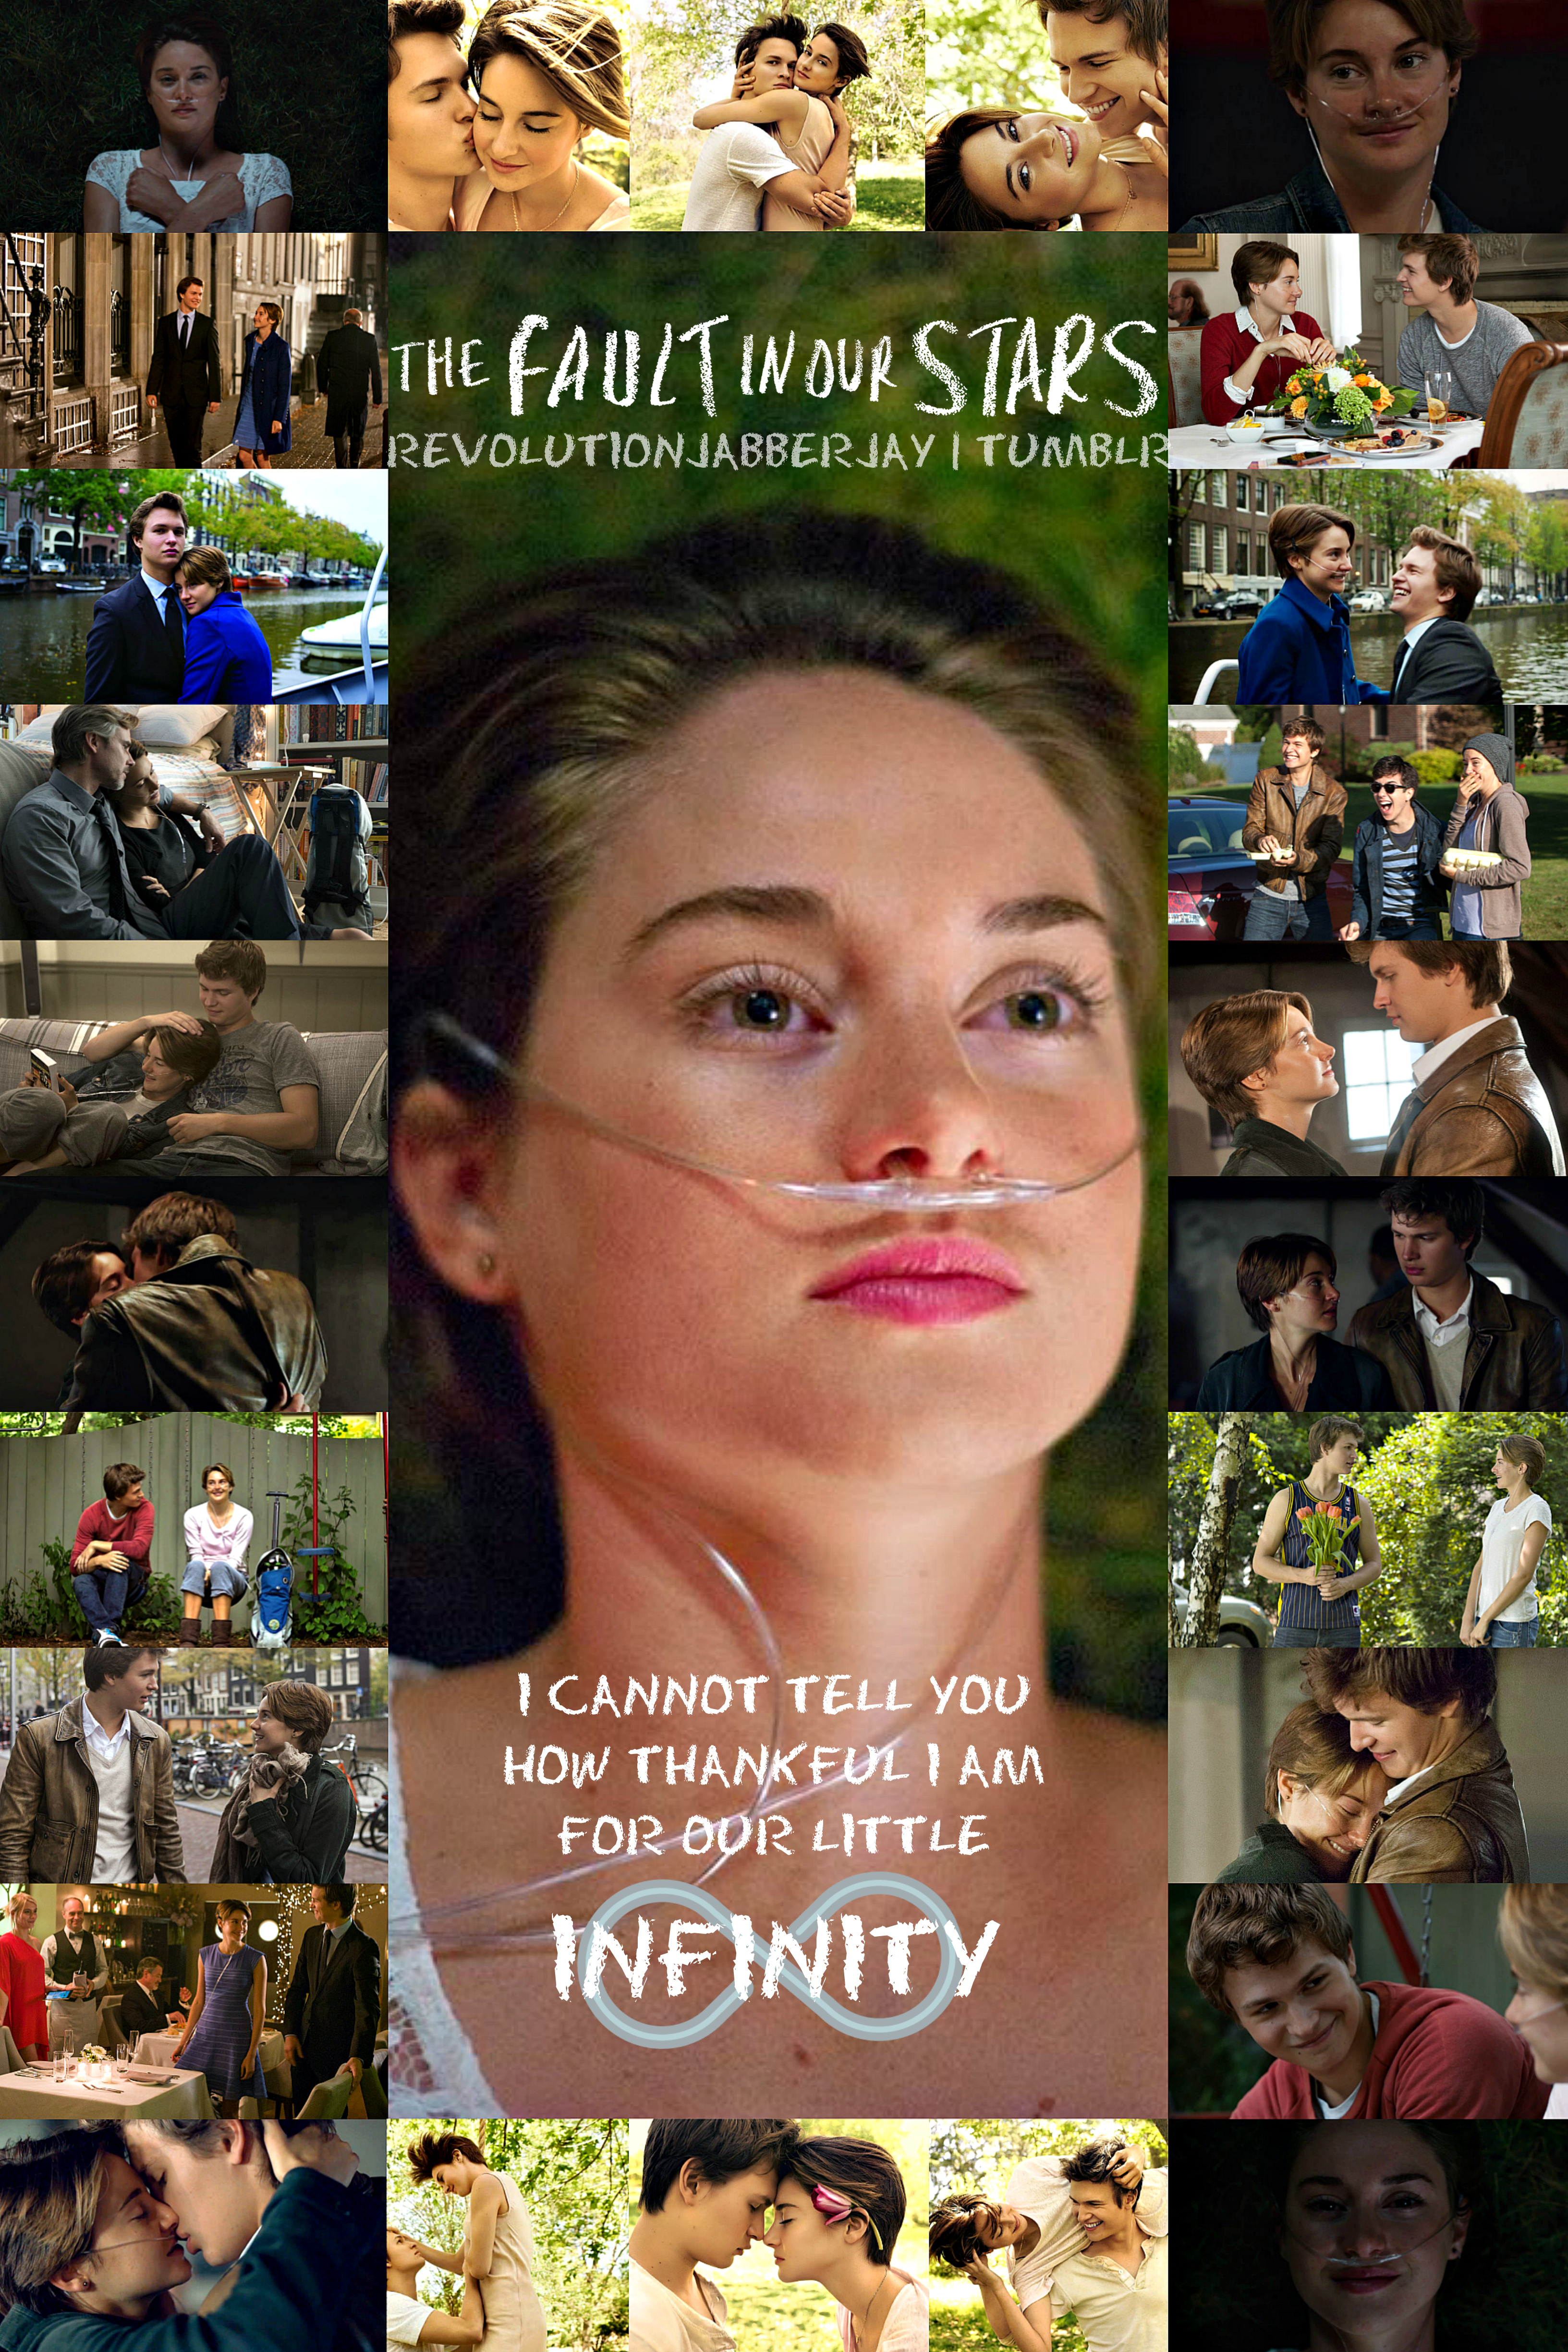 the fault in our stars 2014 film hollywood movie love story sub